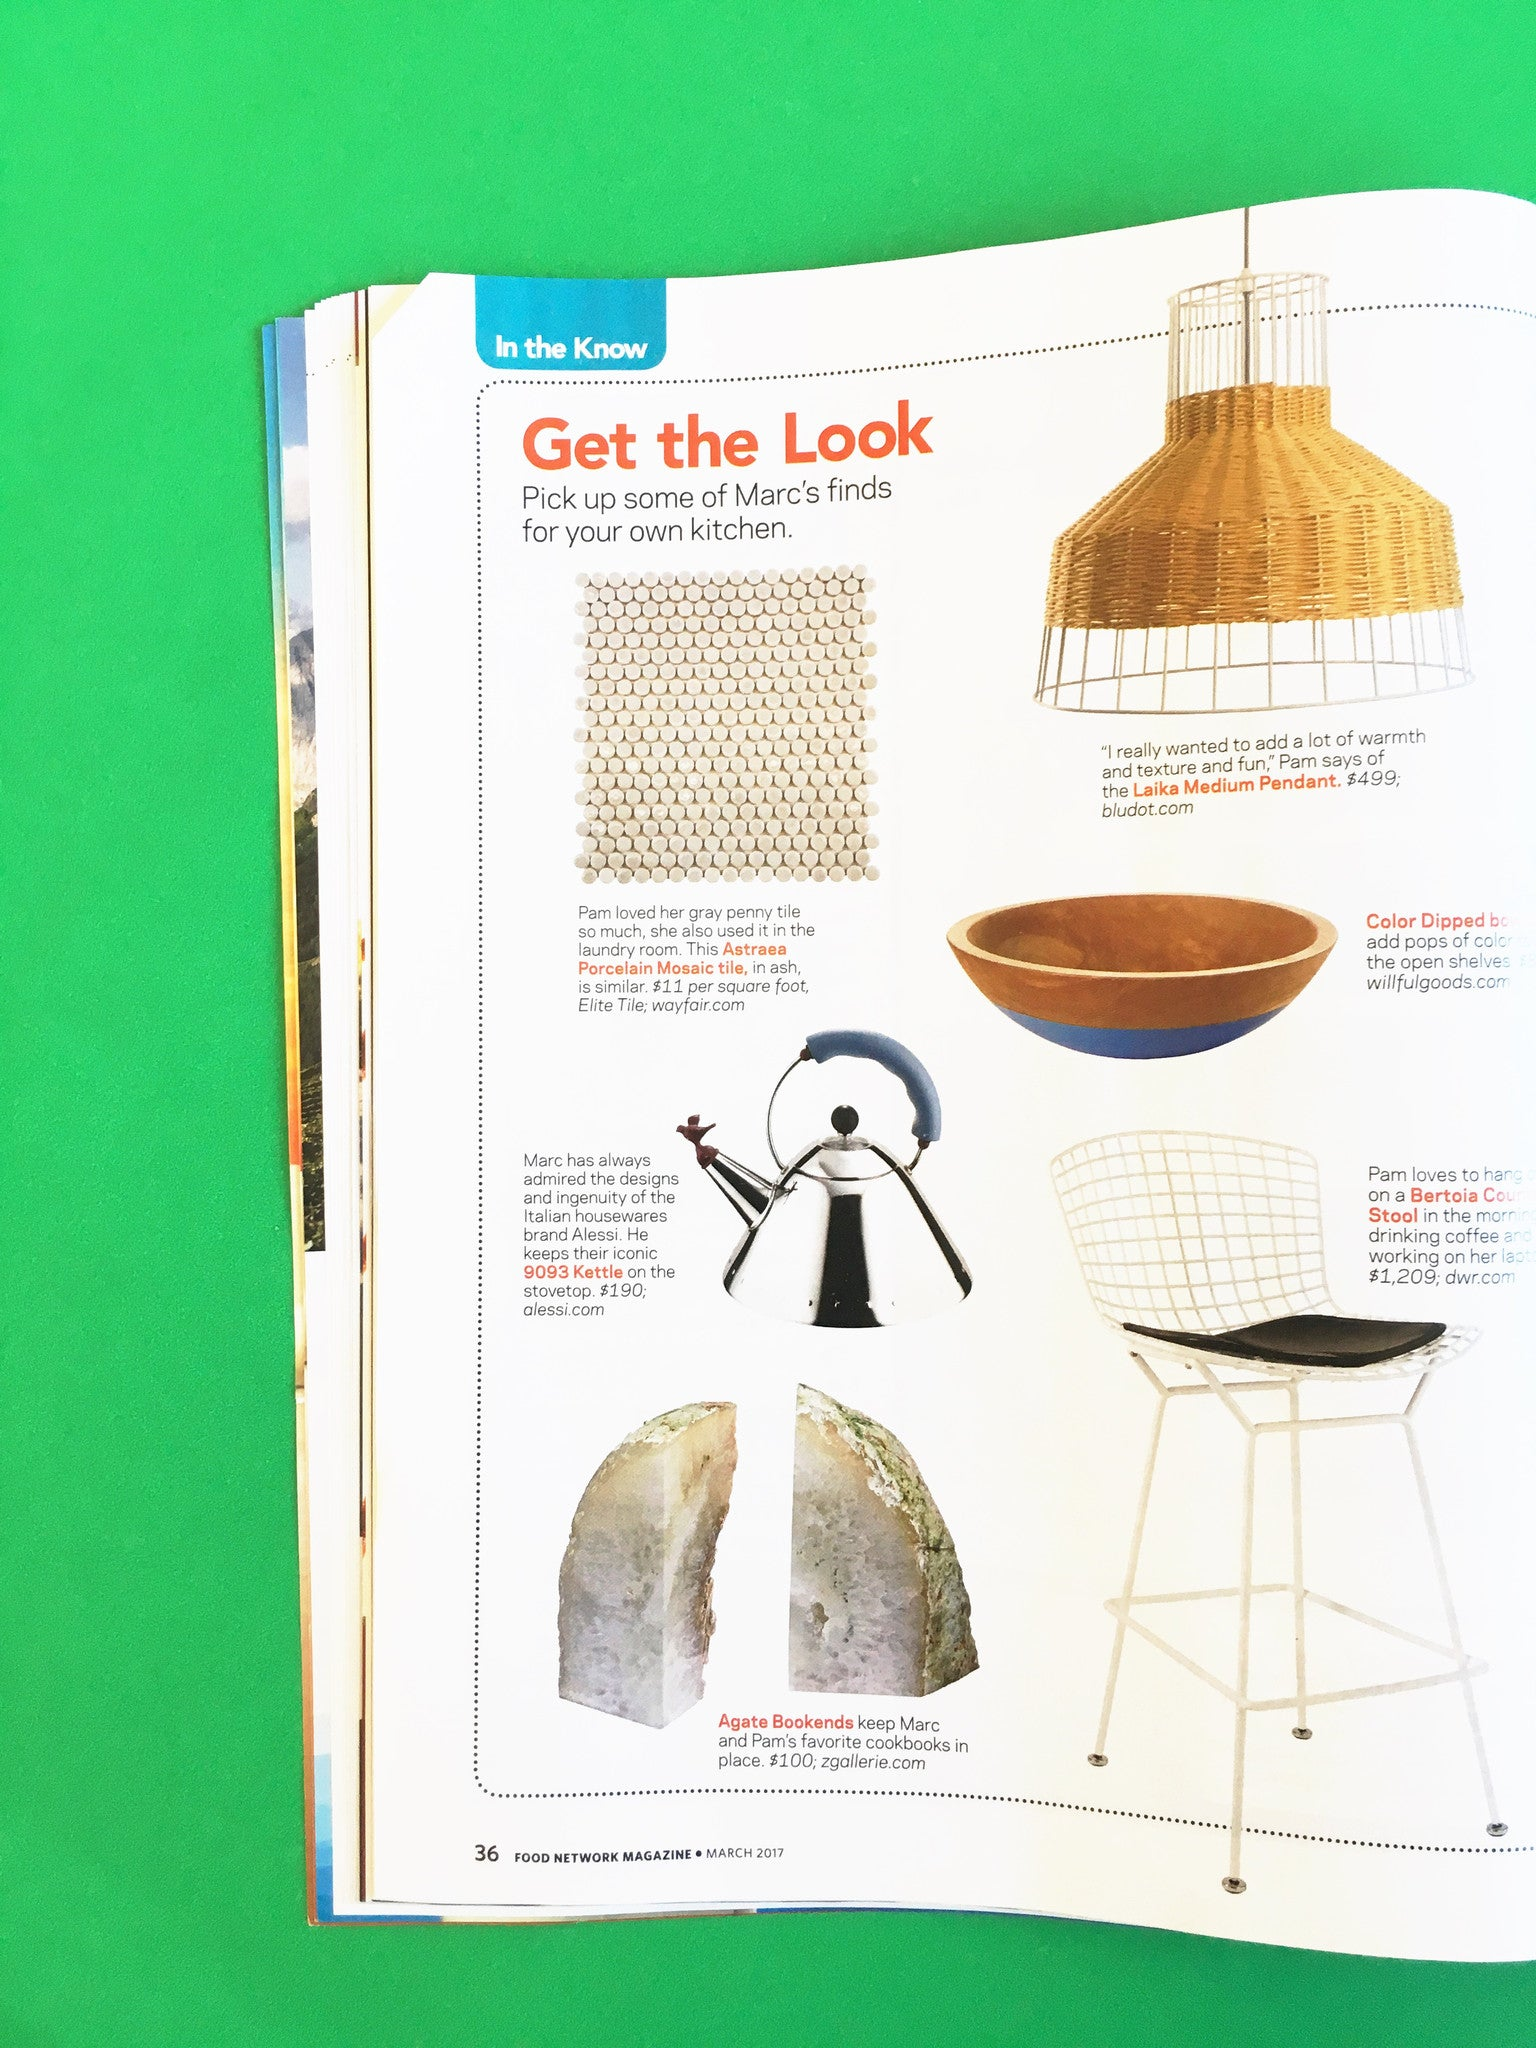 I Spy Willful Goods In... Food Network Magazine